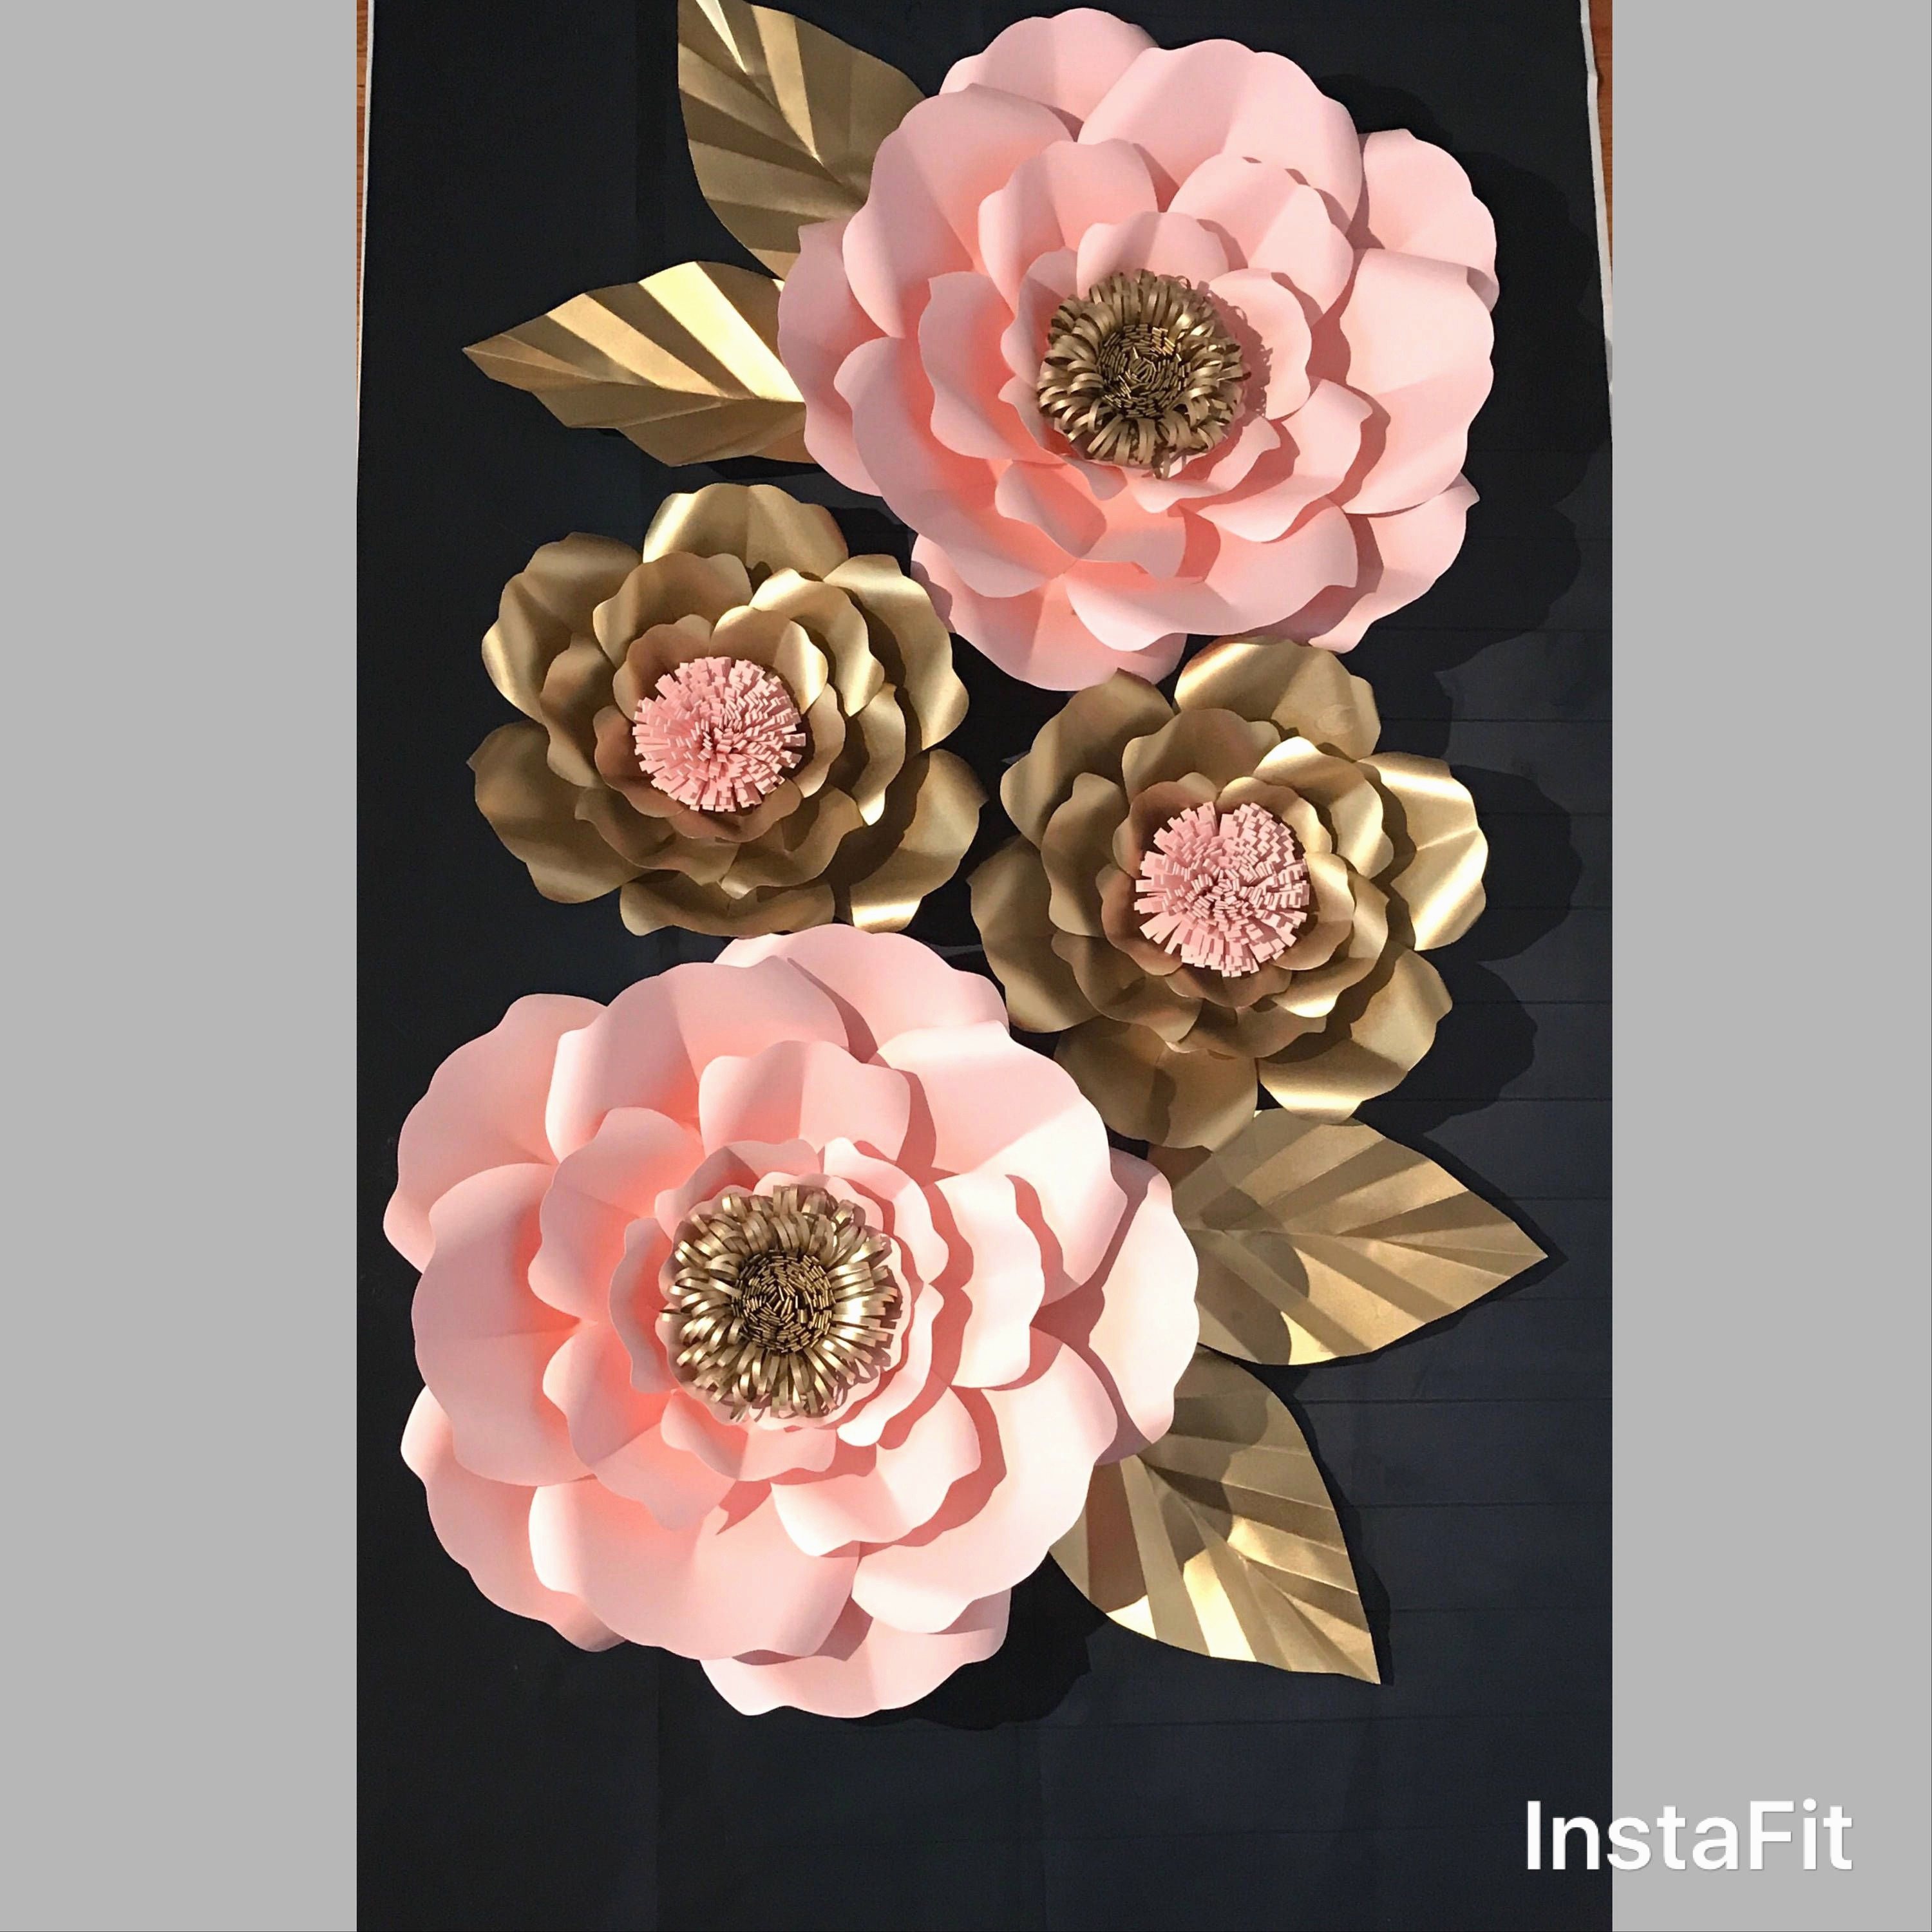 27 Ideal Antique Rose Vase 2021 free download antique rose vase of awesome h vases wall hanging flower vase newspaper i 0d scheme wall with awesome floral decor for home beautiful decor floral decor floral decor 0d of awesome h vases